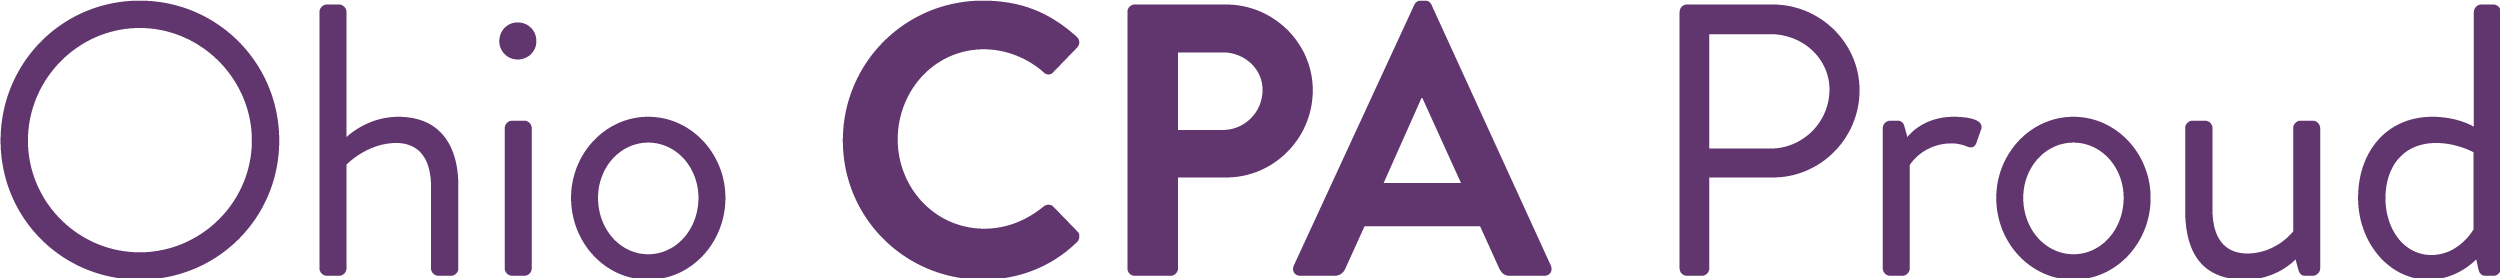 Ohio_CPA_Proud_Purple